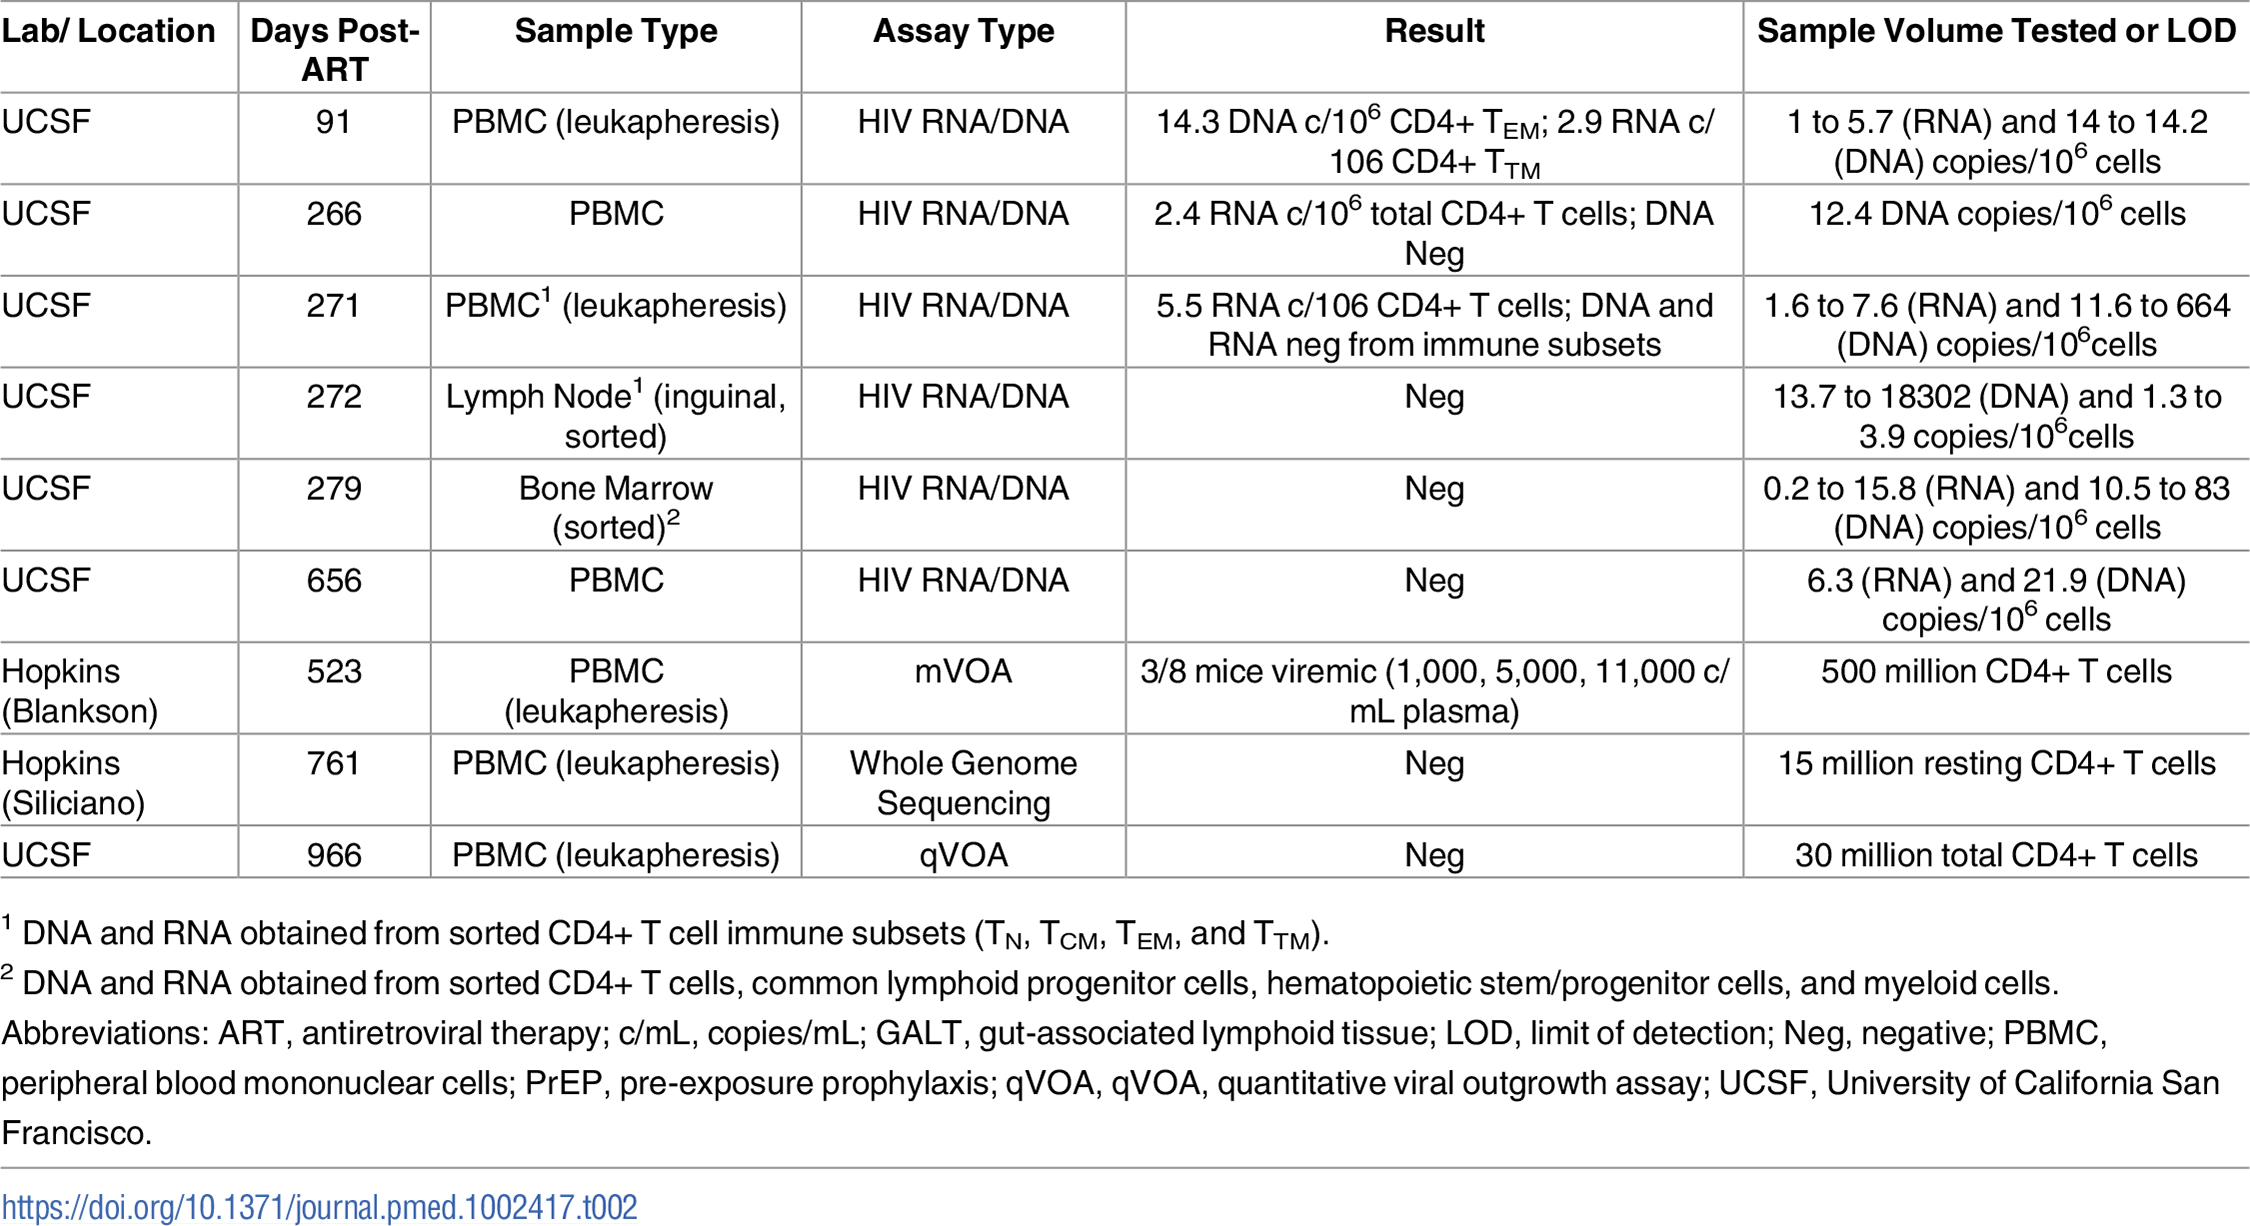 HIV-1 assay results from PrEP Participant B longitudinal blood and tissue sampling.